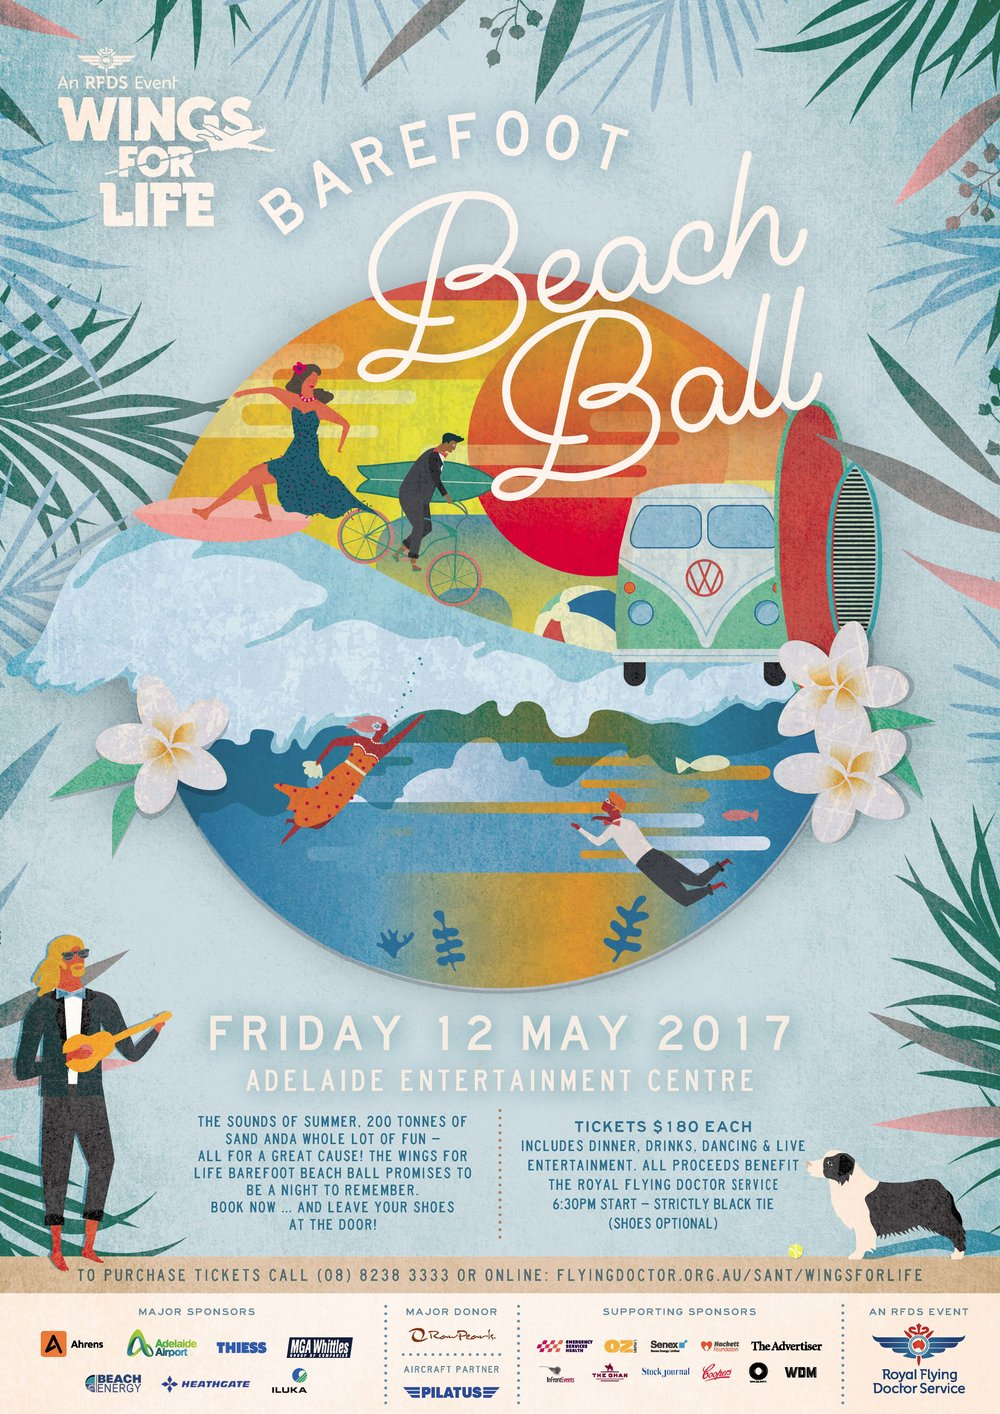 170214_Events_WFL Ball 2017_A2 Poster_FINAL.jpg